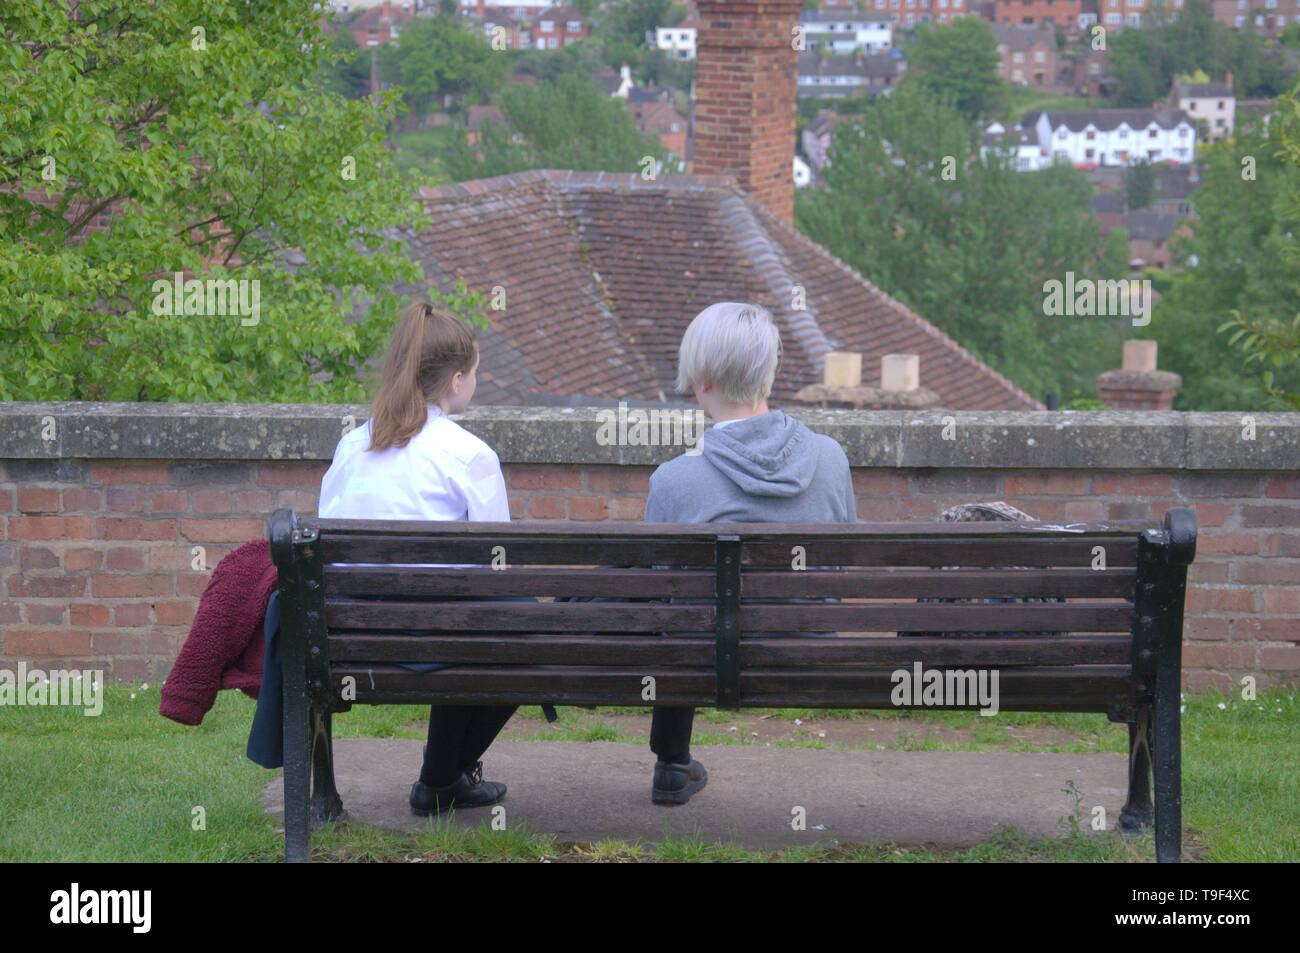 Rear view of a caucasian boy and girl sat on a bench in Bridgnorth, Shropshire, uk - Stock Image